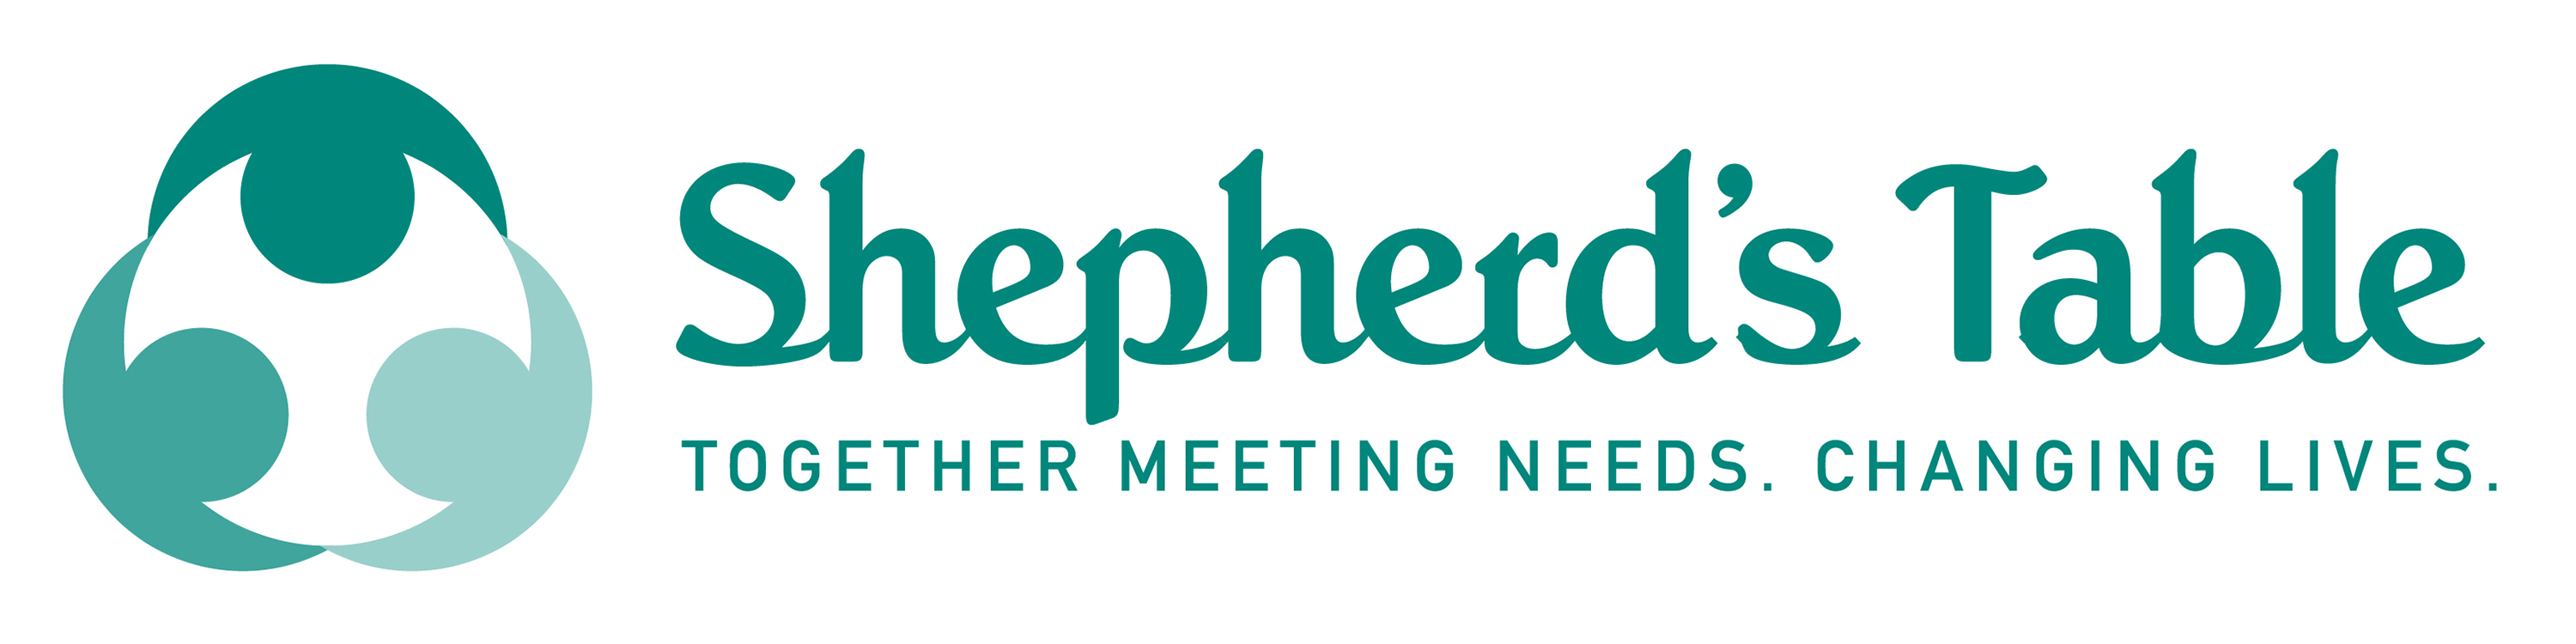 logo for Shepherd's Table